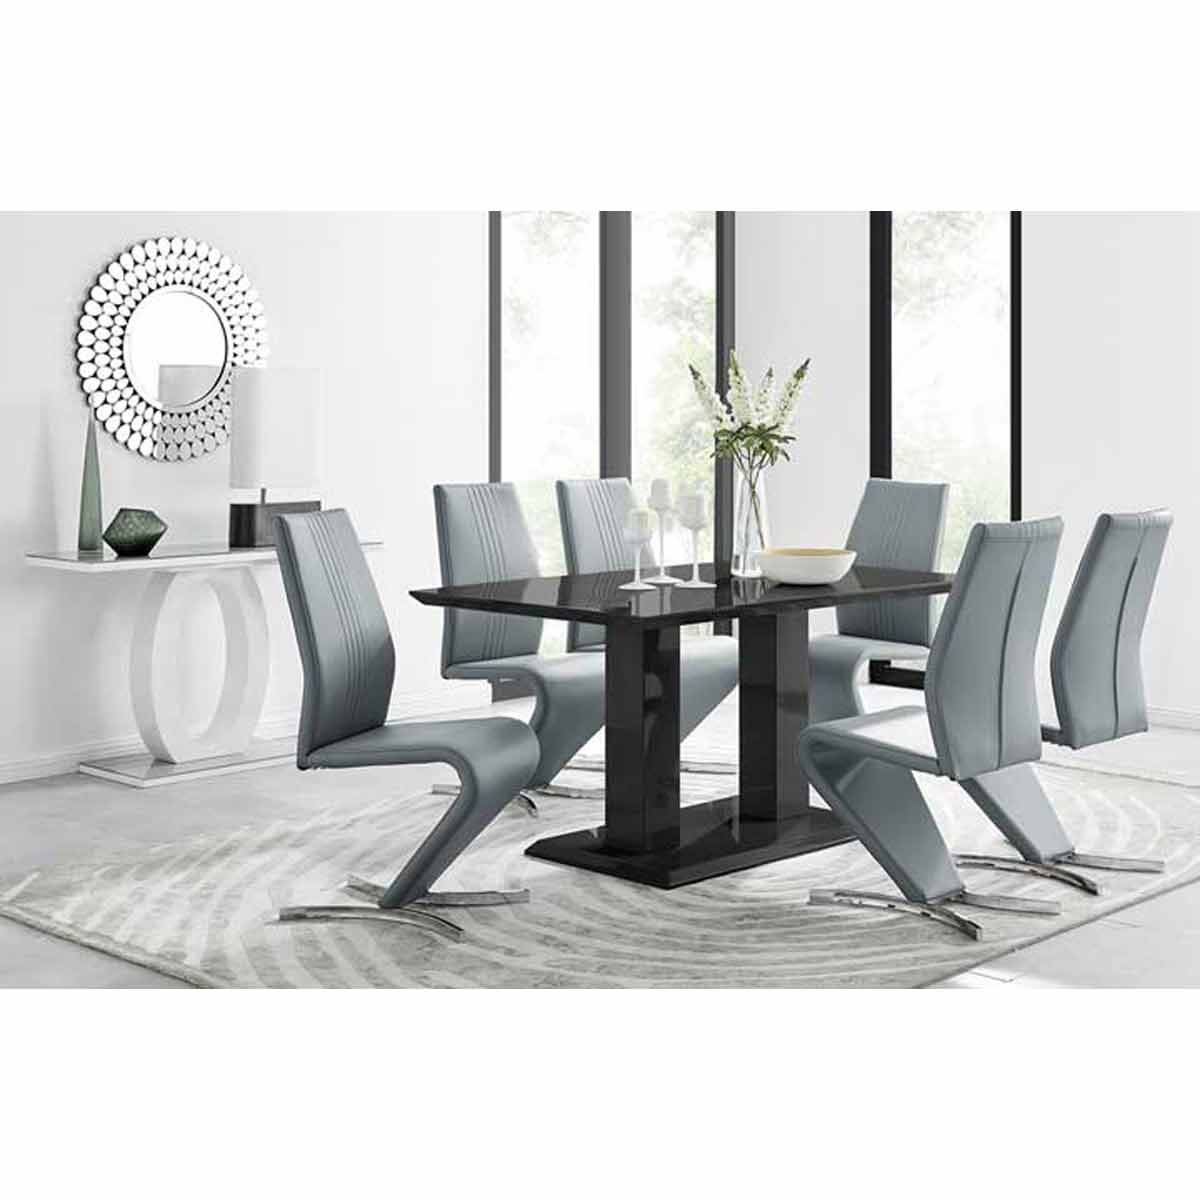 Furniture Box Imperia Black High Gloss Dining Table And 6 Elephant Grey Luxury Willow Dining Chairs Set